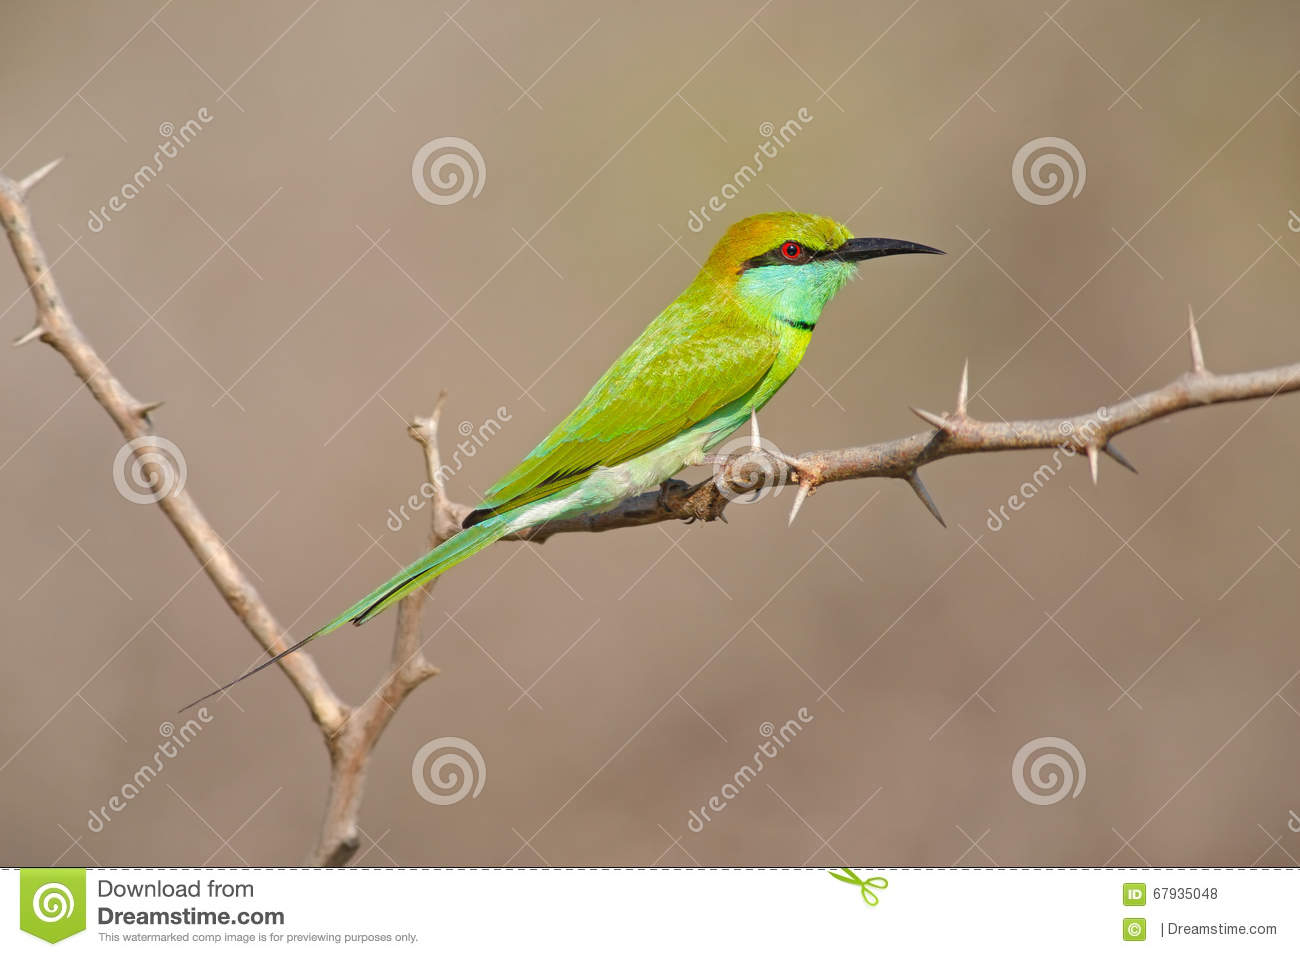 Green Bee-eater clipart #12, Download drawings